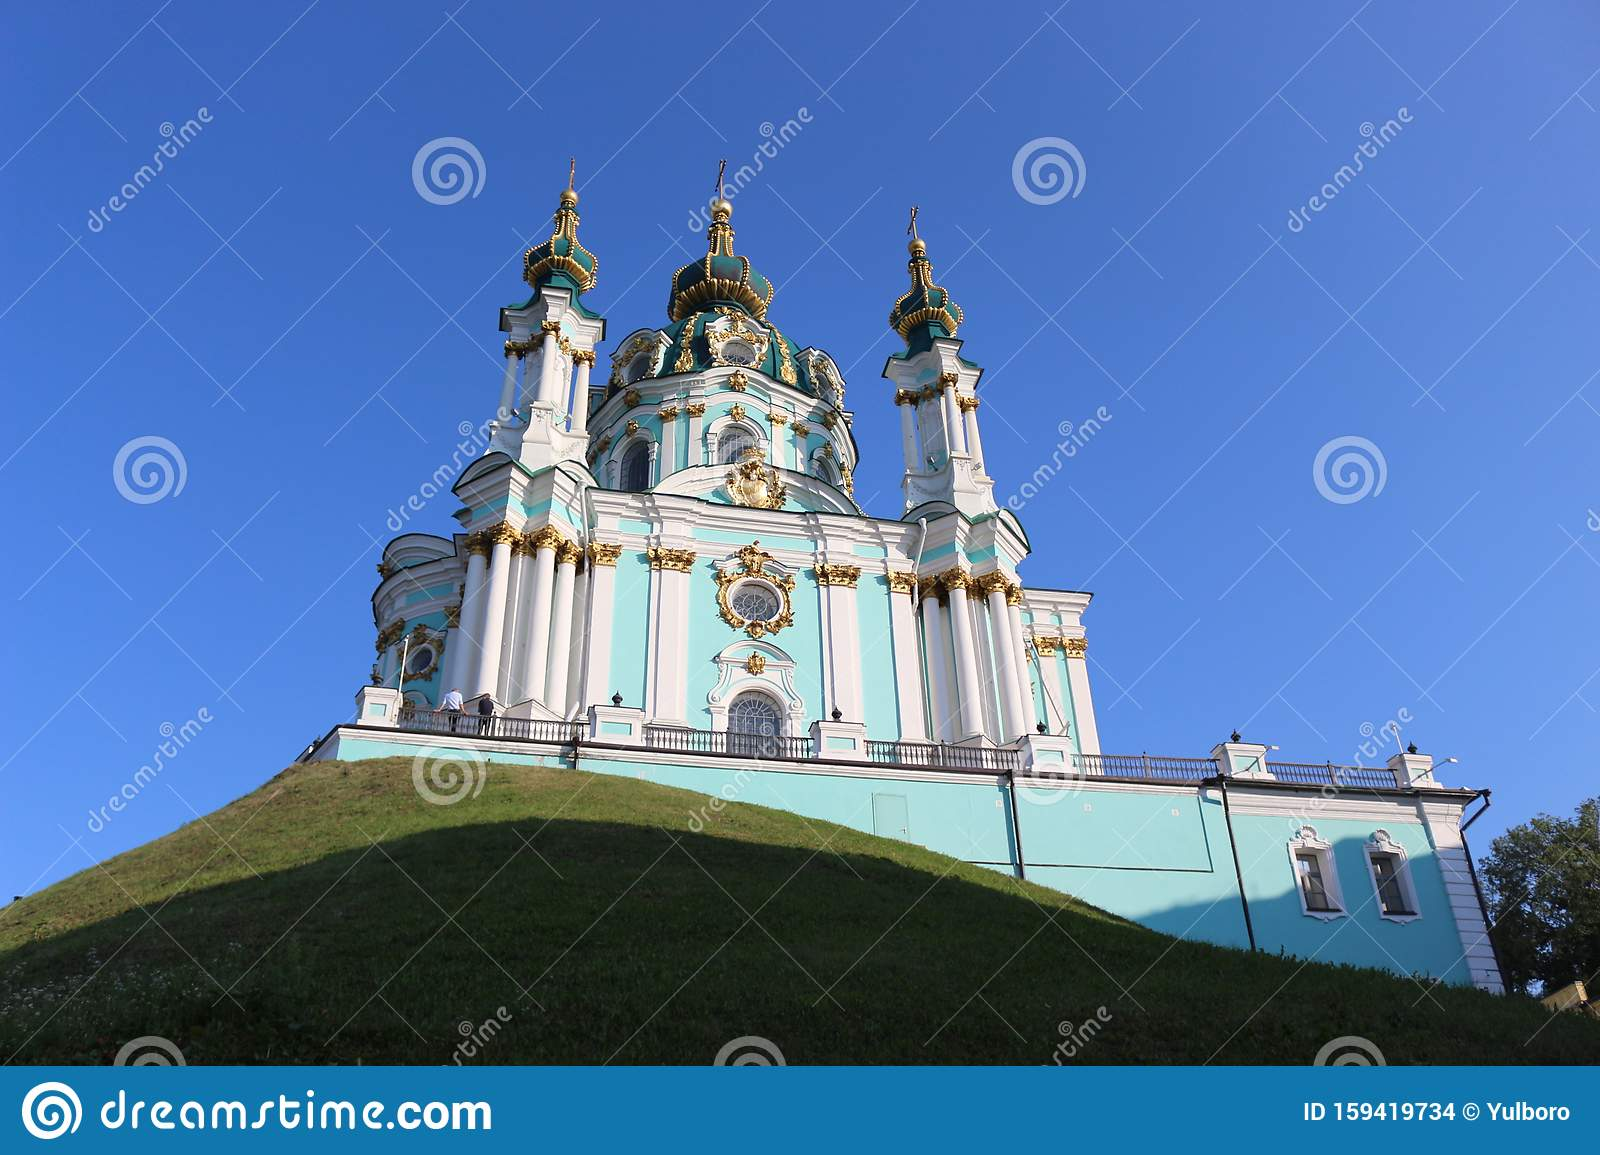 One Of The Most Beautiful Churches In Ukraine Is Located In Kiev This Is A Temple In Honor Of Andrew The Apostle Jesus Christ Stock Photo Image Of Christian Kiev 159419734